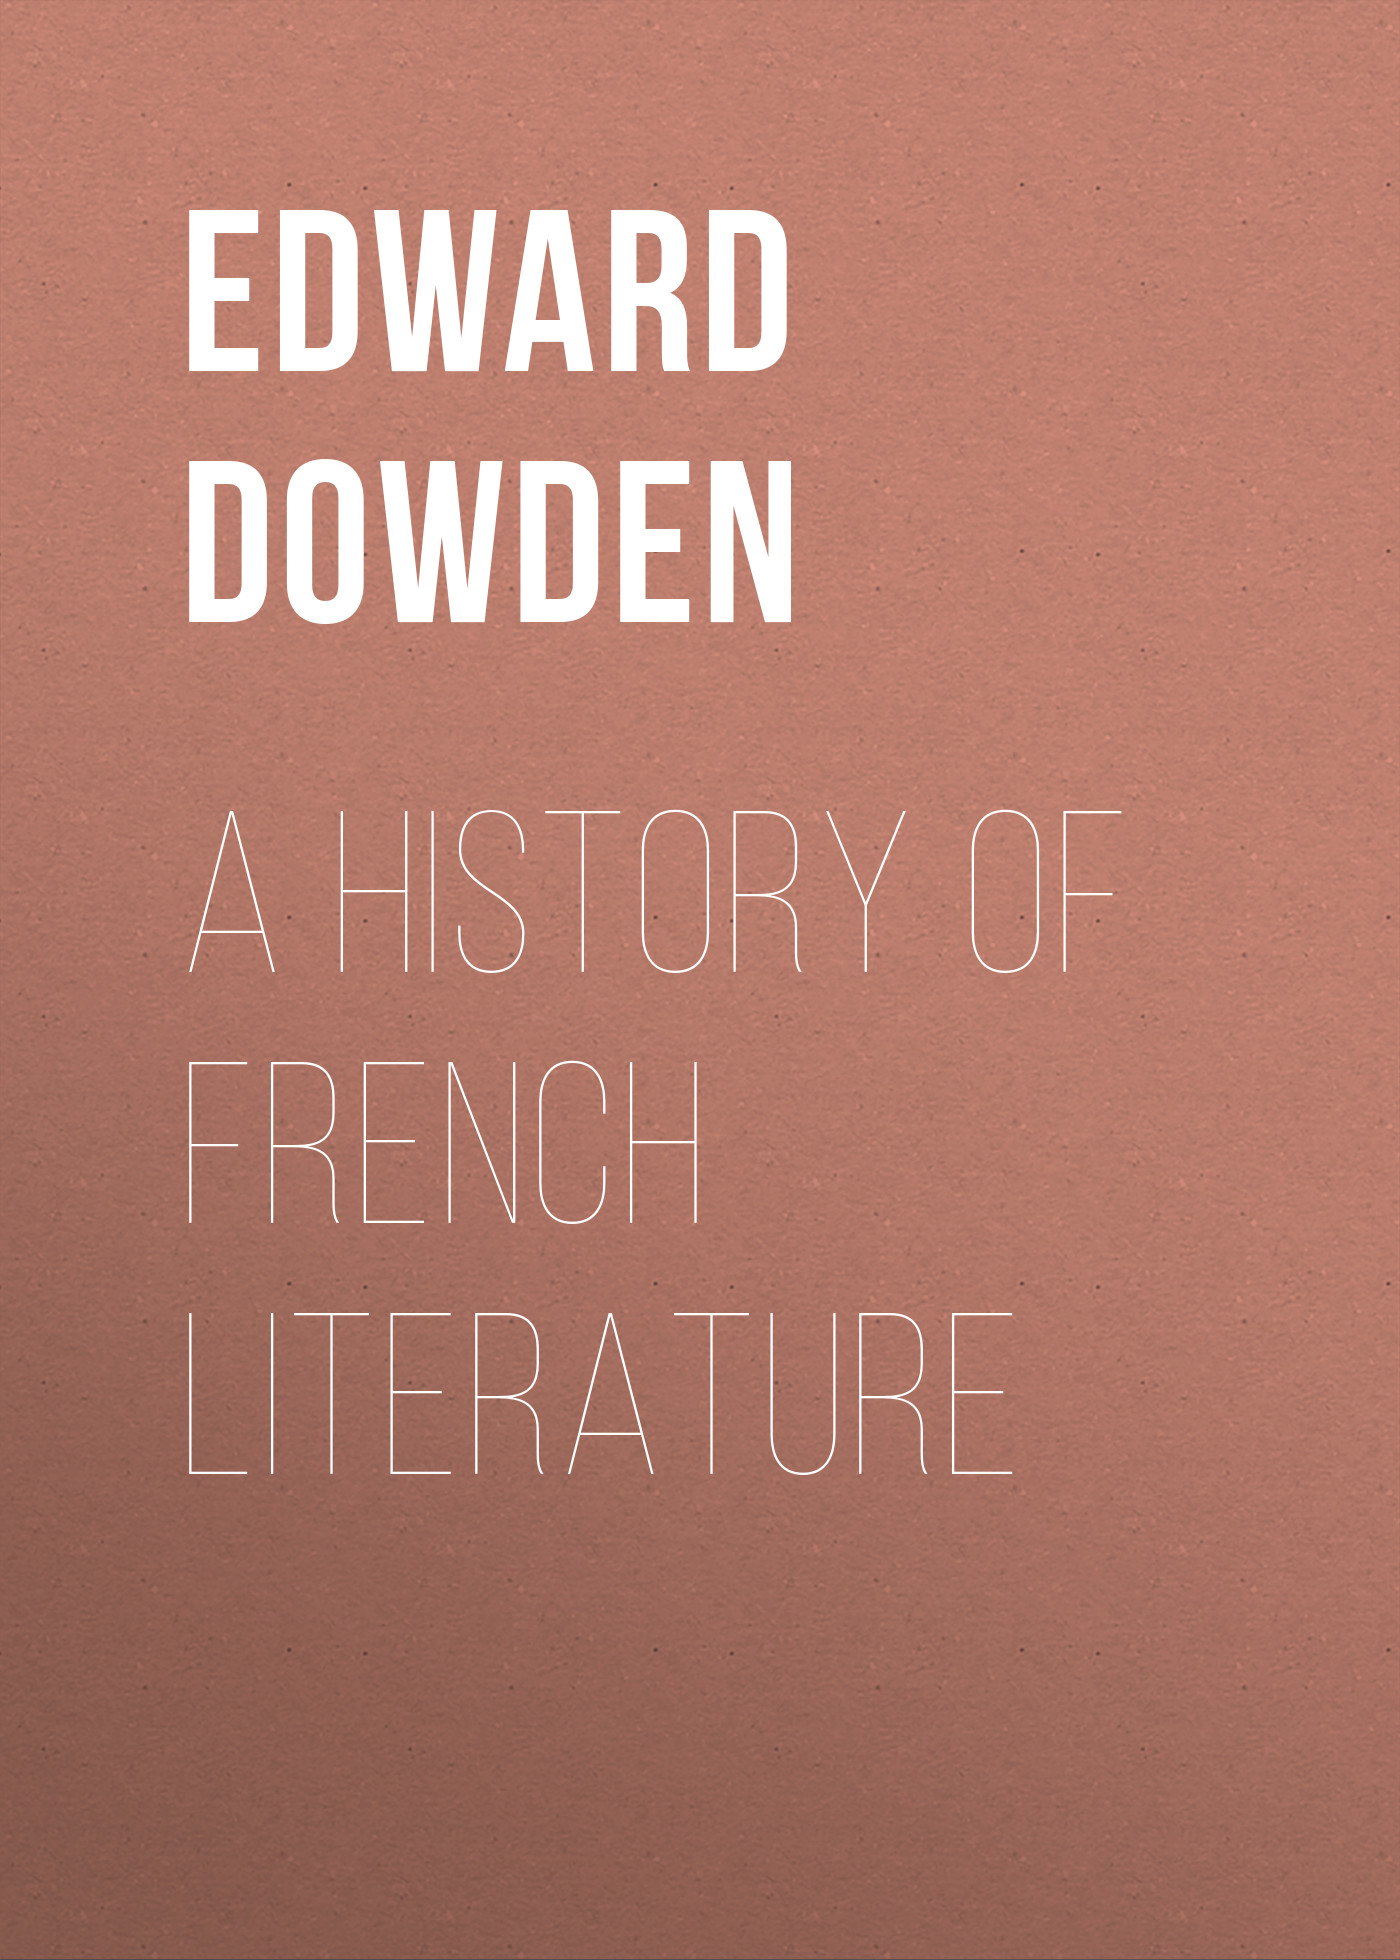 Edward Dowden A History of French Literature andrzej gasiorek a history of modernist literature